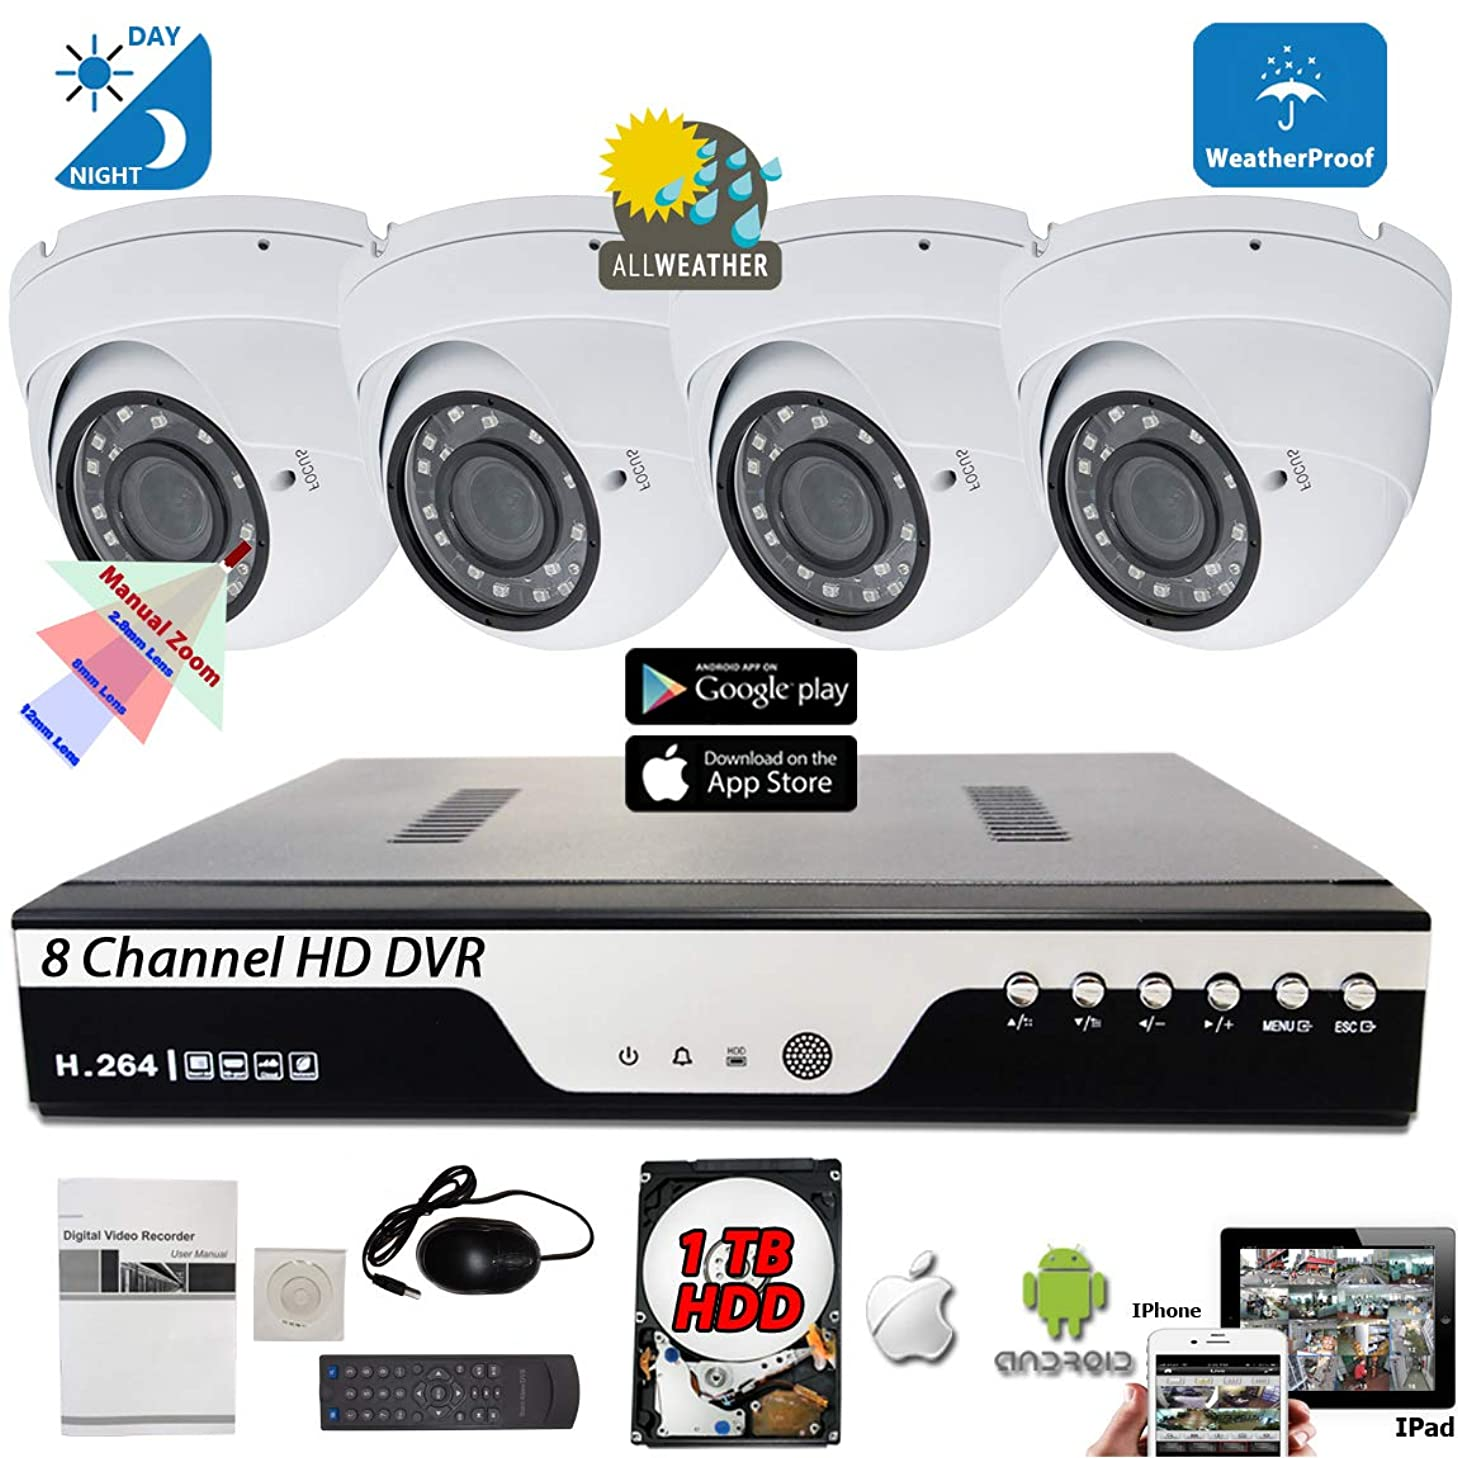 Evertech 8 Channel HD DVR Remote Access w/ 4 pcs 4in1 AHD TVI CVI Analog Varifocal Manual Zoom 1080P HD Dome CCTV Security Camera System 1TB Hard Drive